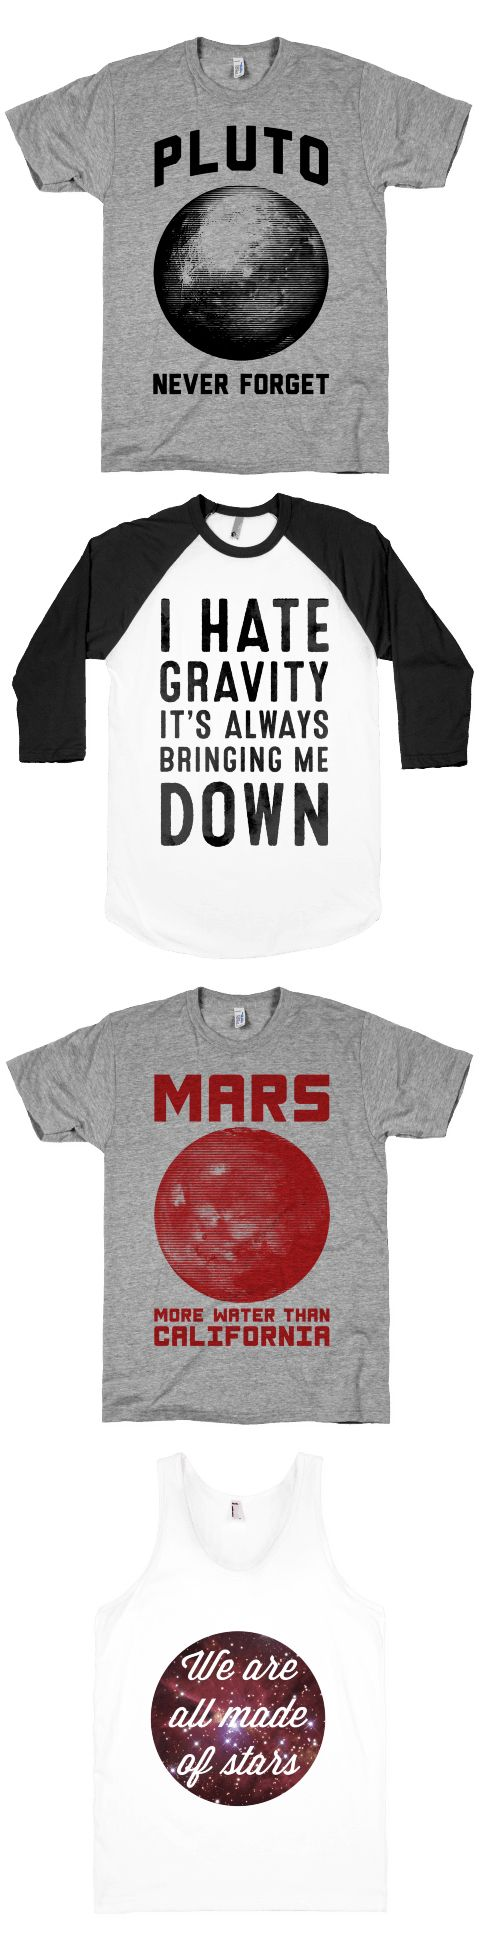 This collection of shirts are perfect for science lovers and especially lovers of astronomy. Show some love for space with these awesome shirts.